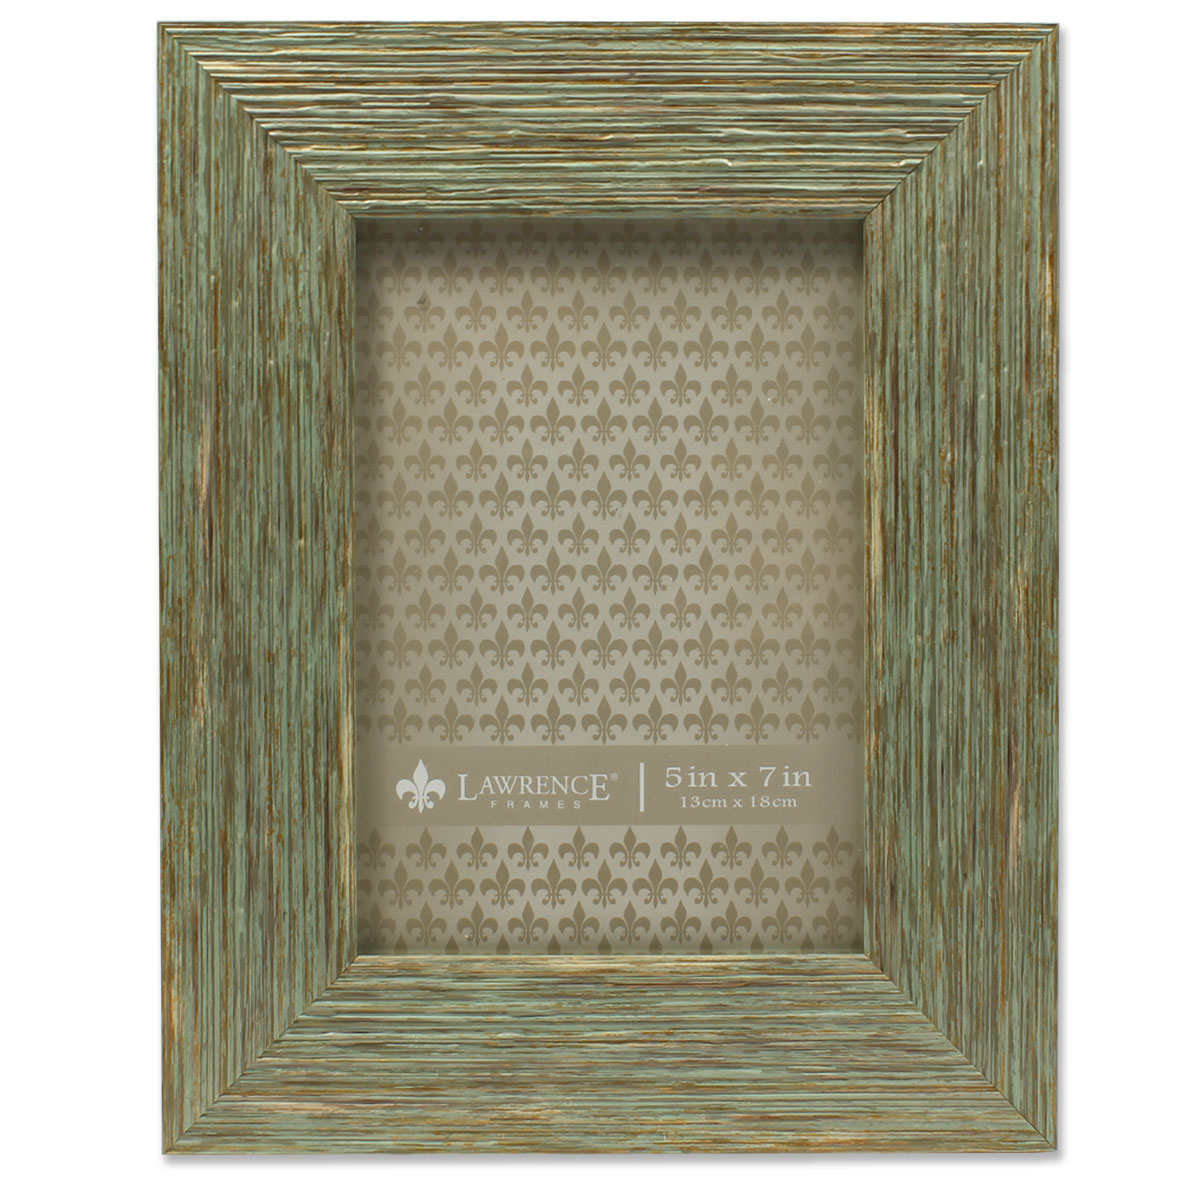 5x7 Weathered Green Decorative Picture Frame Deep Grain by Lawrence Frames